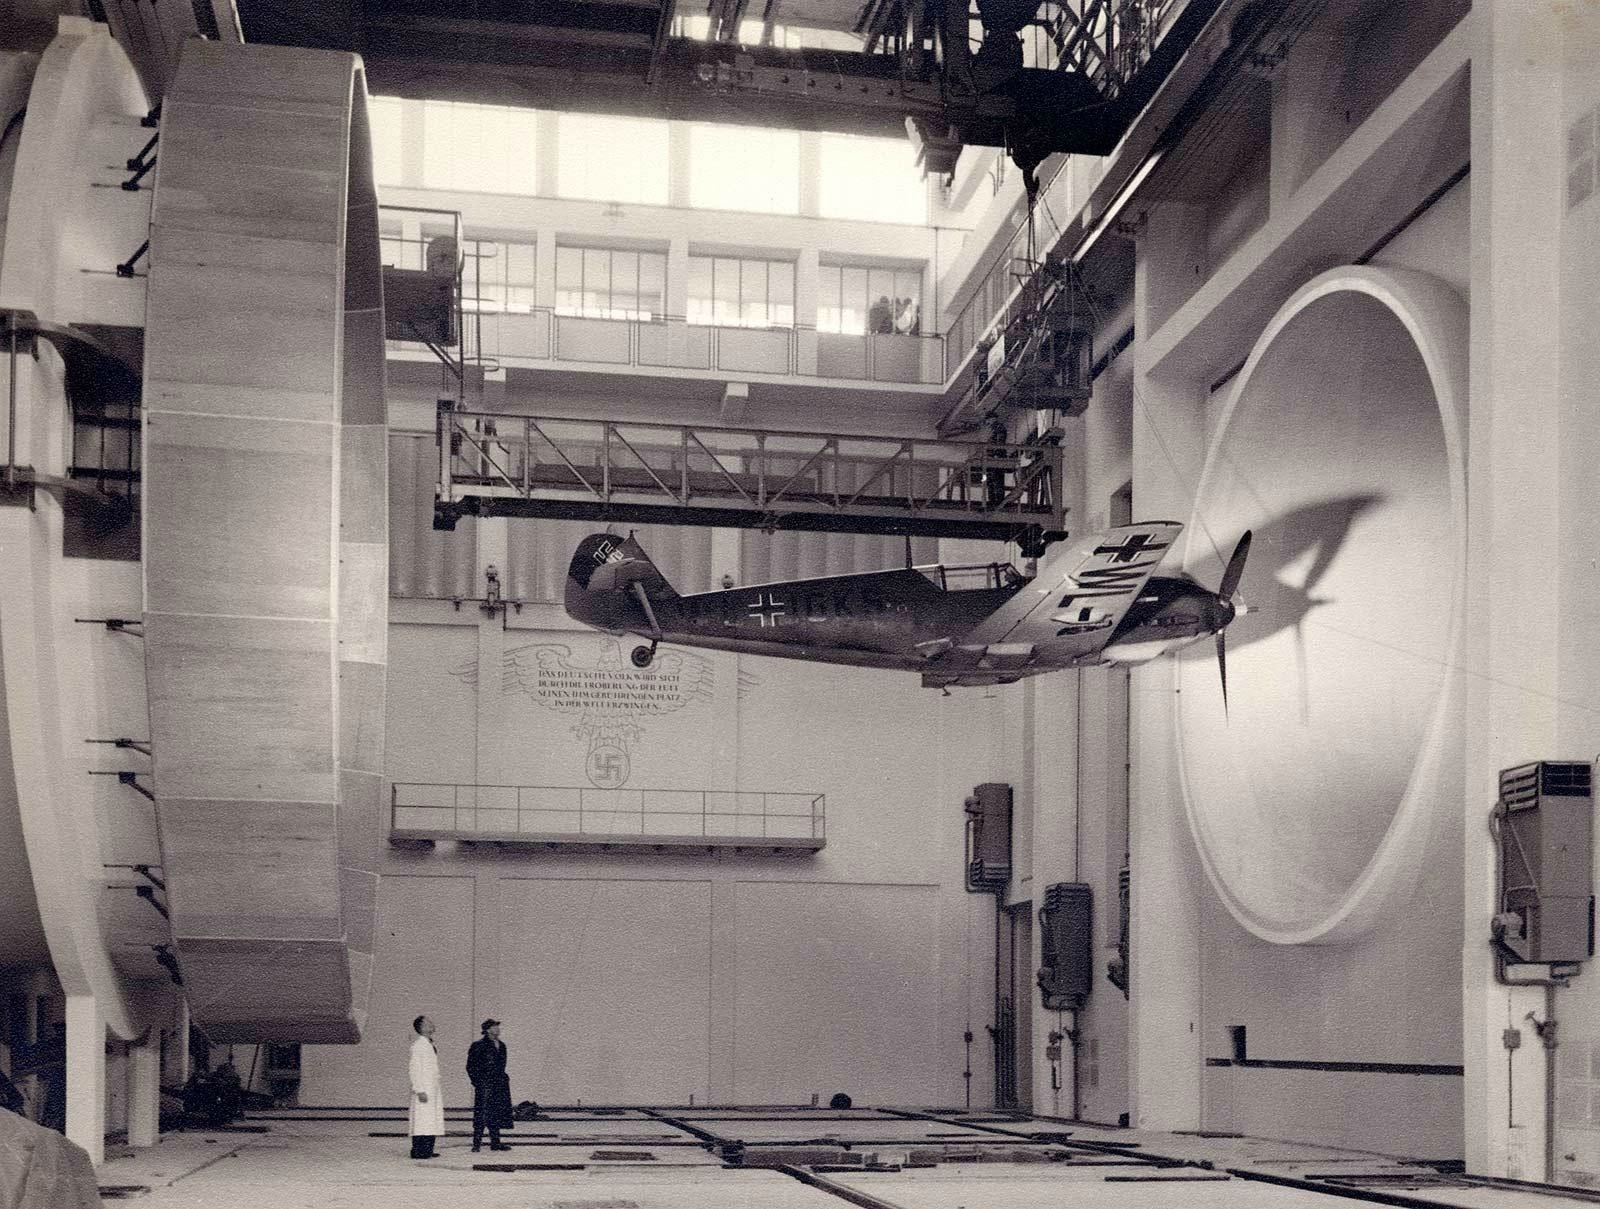 German scientists testing a Messerschmitt Bf 109, 1940.